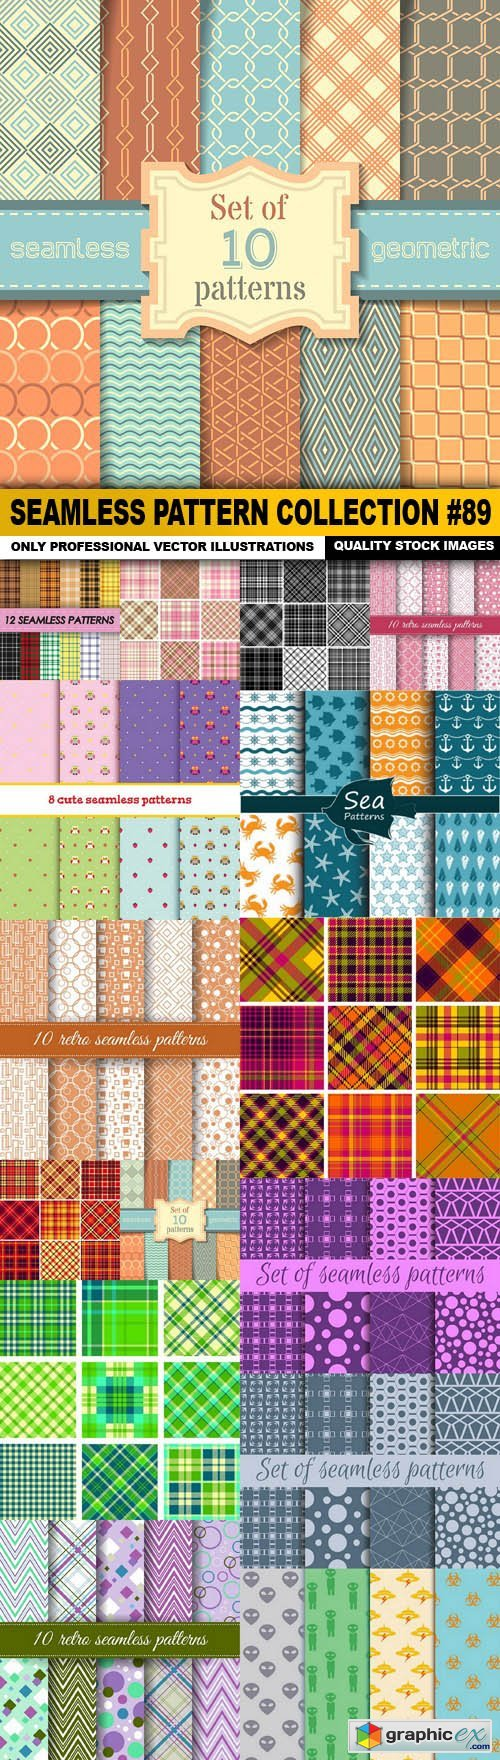 Seamless Pattern Collection #89 - 15 Vector